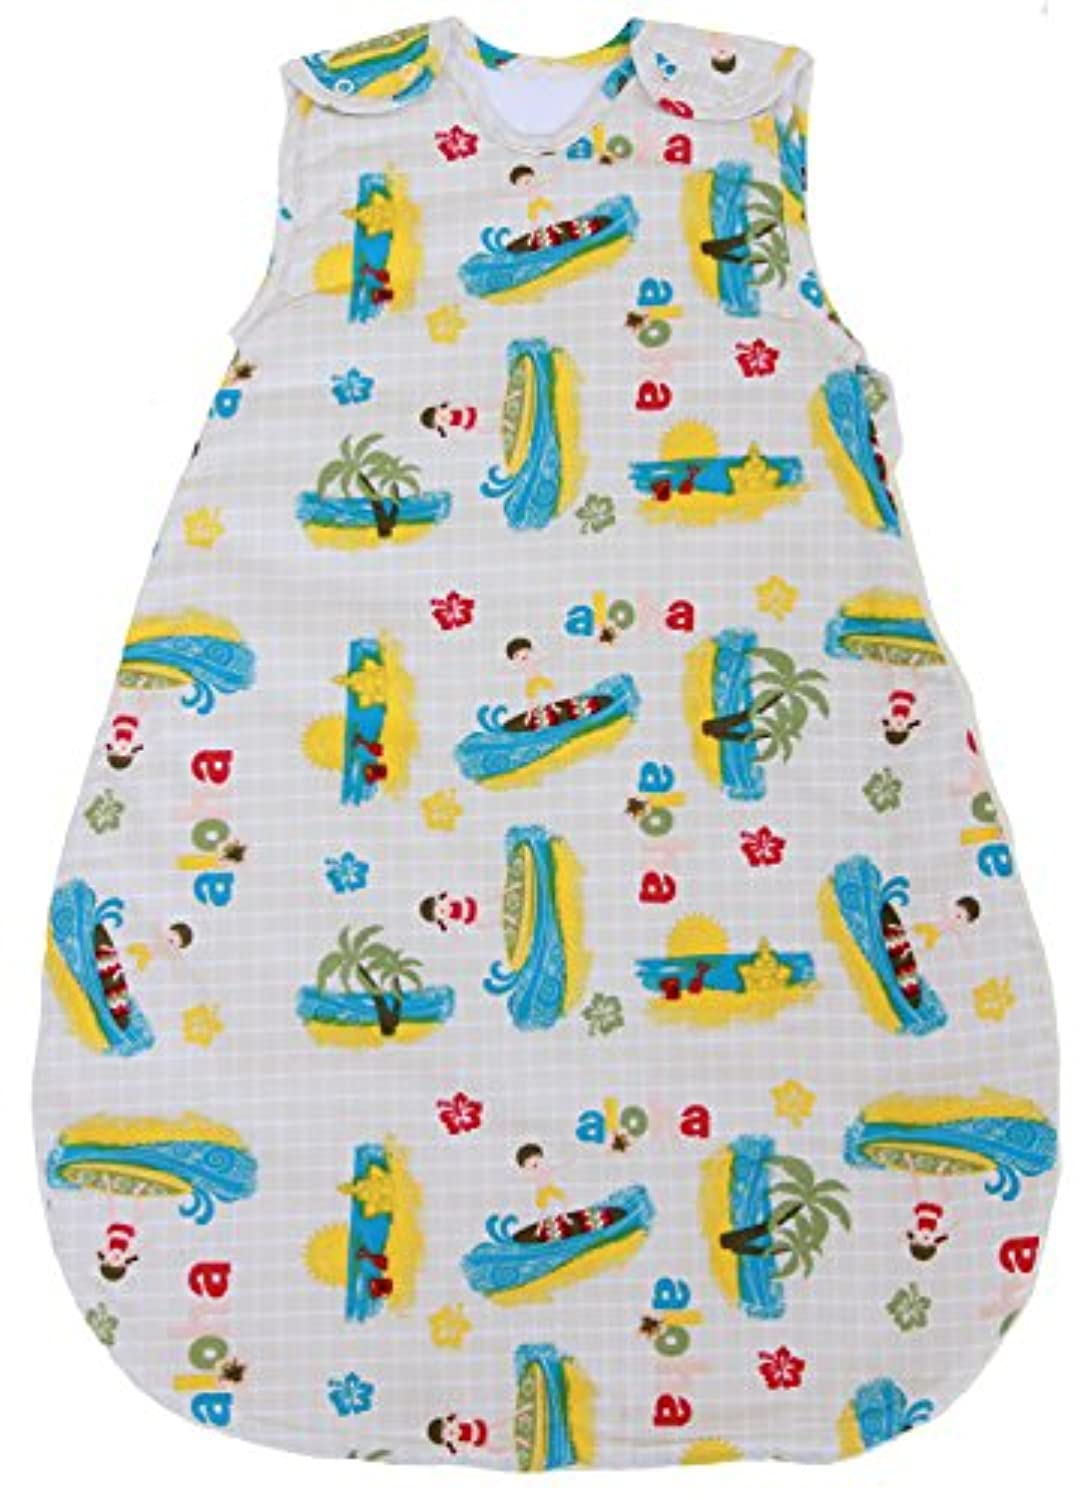 Baby Sleeping Bag with Surfer Pattern, Summer Model 1 TOG (Medium (10 - 24 mos)) by BabyinaBag